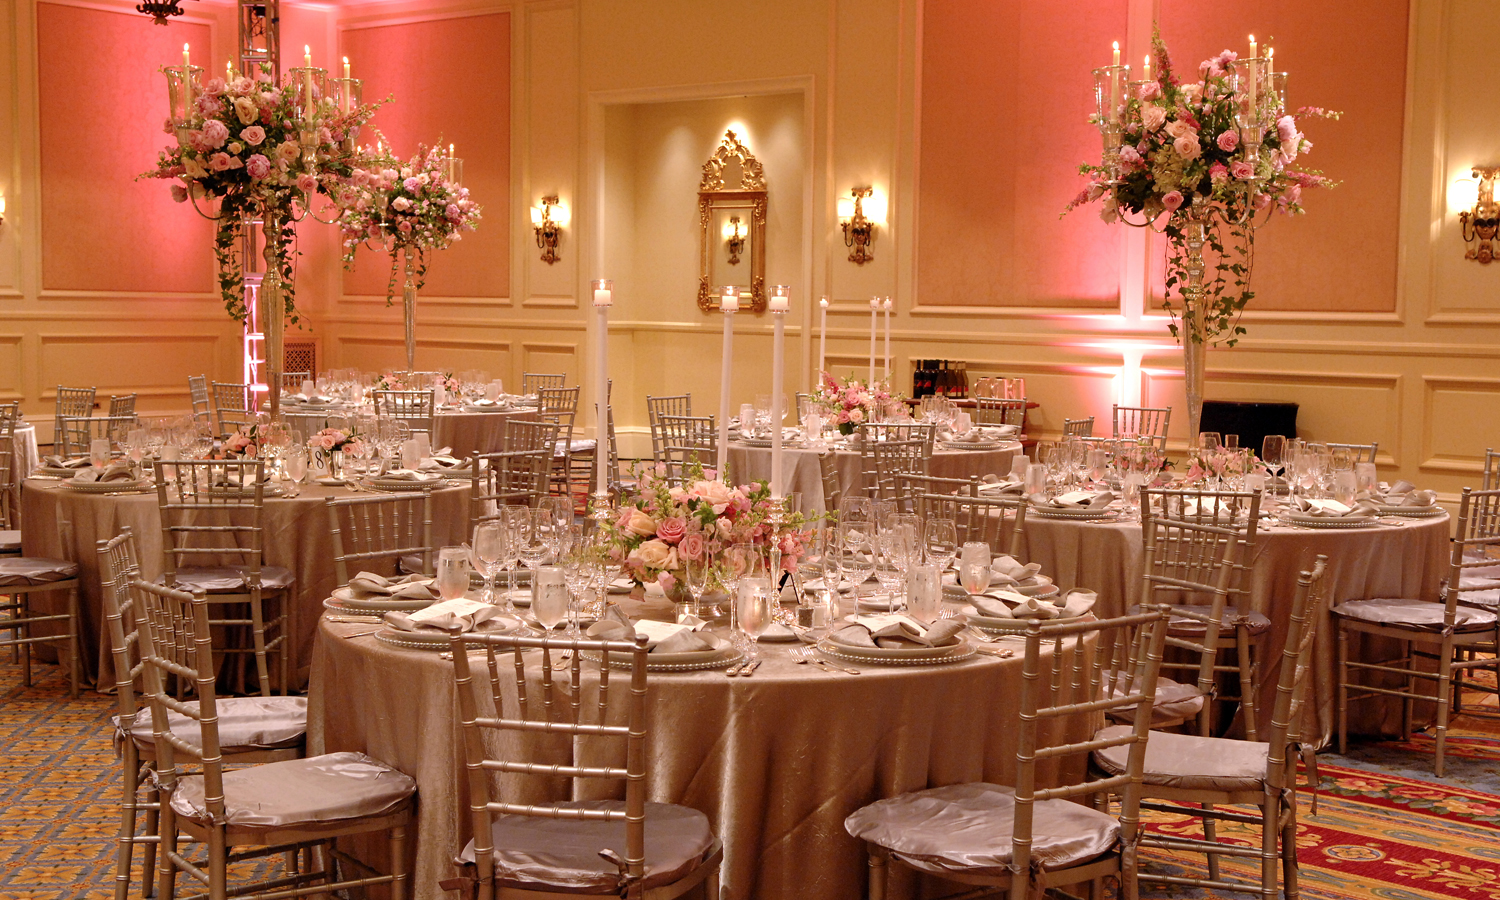 Wedding Photography: Damon Tucci | Wedding Reception: The Ritz-Carlton Orlando | Wedding Planner: Just Marry!